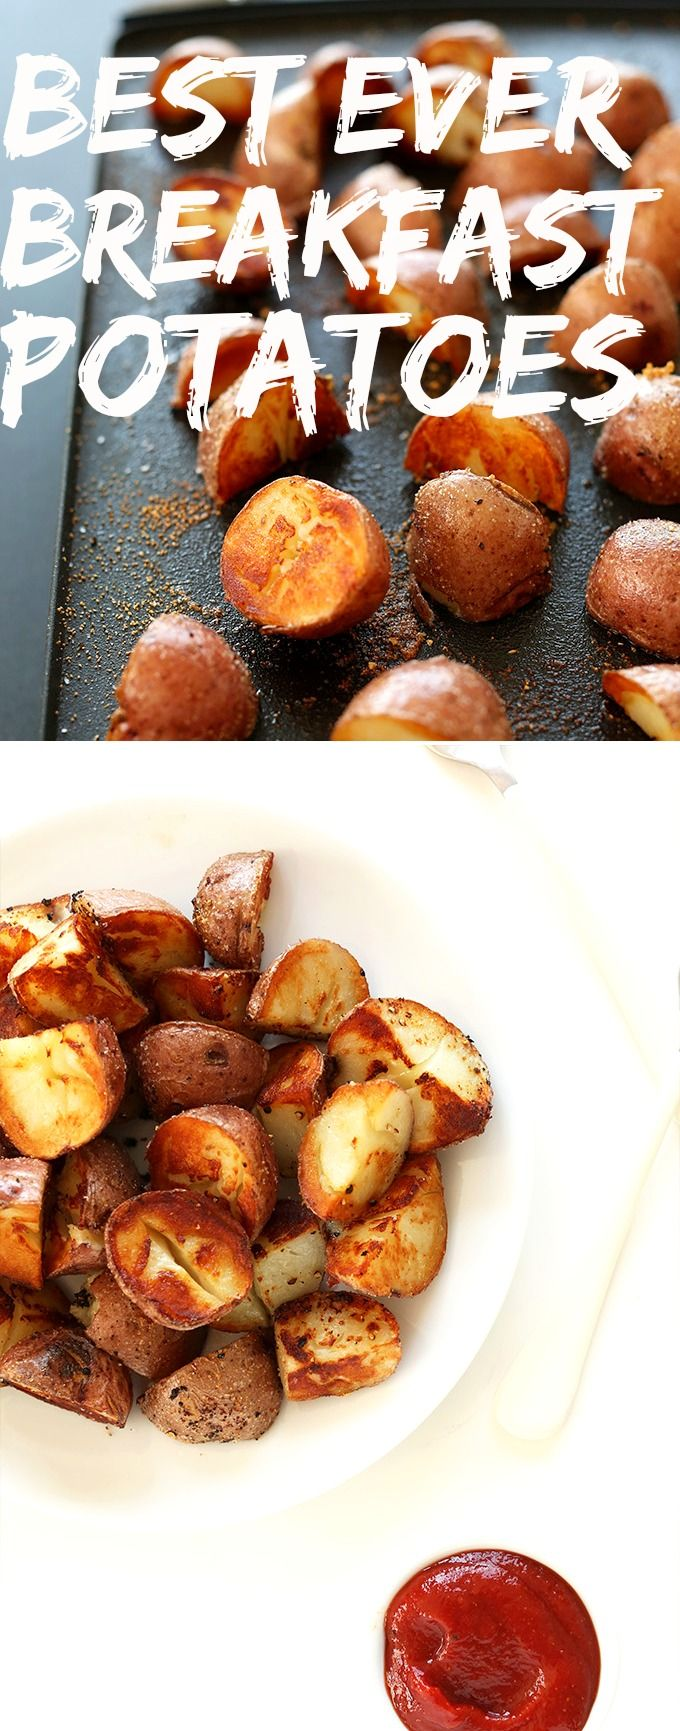 SUPER CRISPY Breakfast Potatoes thanks to one SIMPLE trick! #vegan #glutenfree